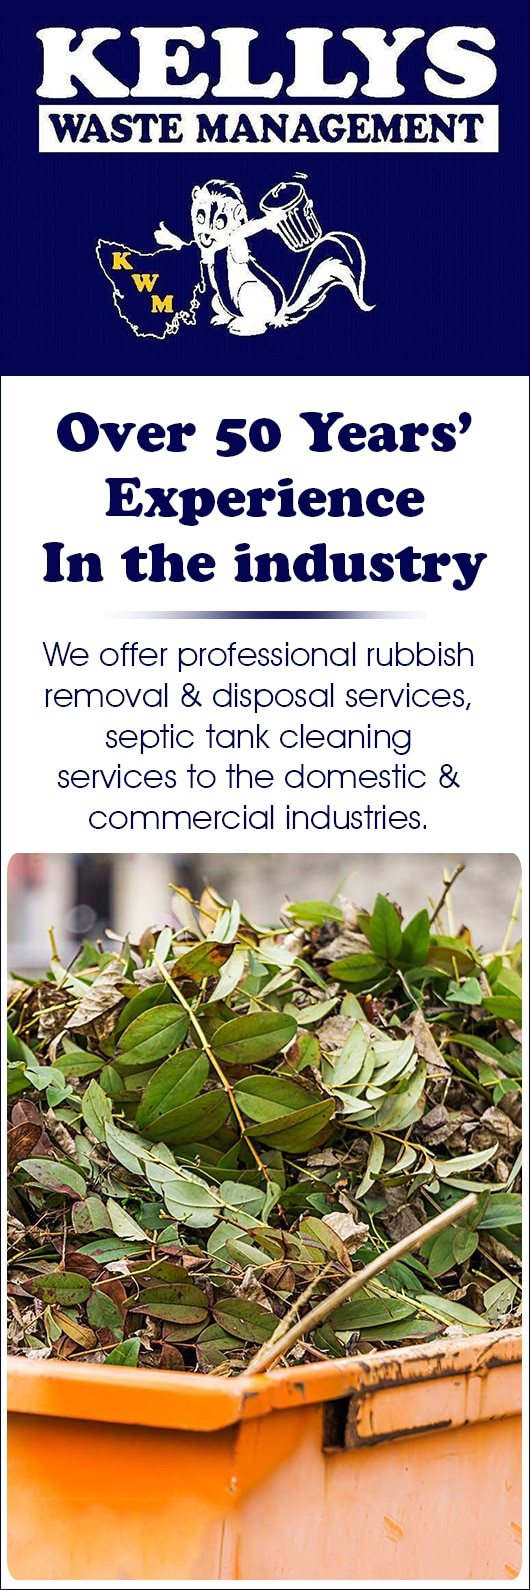 Kelly's Waste Management - Rubbish Removal & Skip Bins - 210 Ridgely